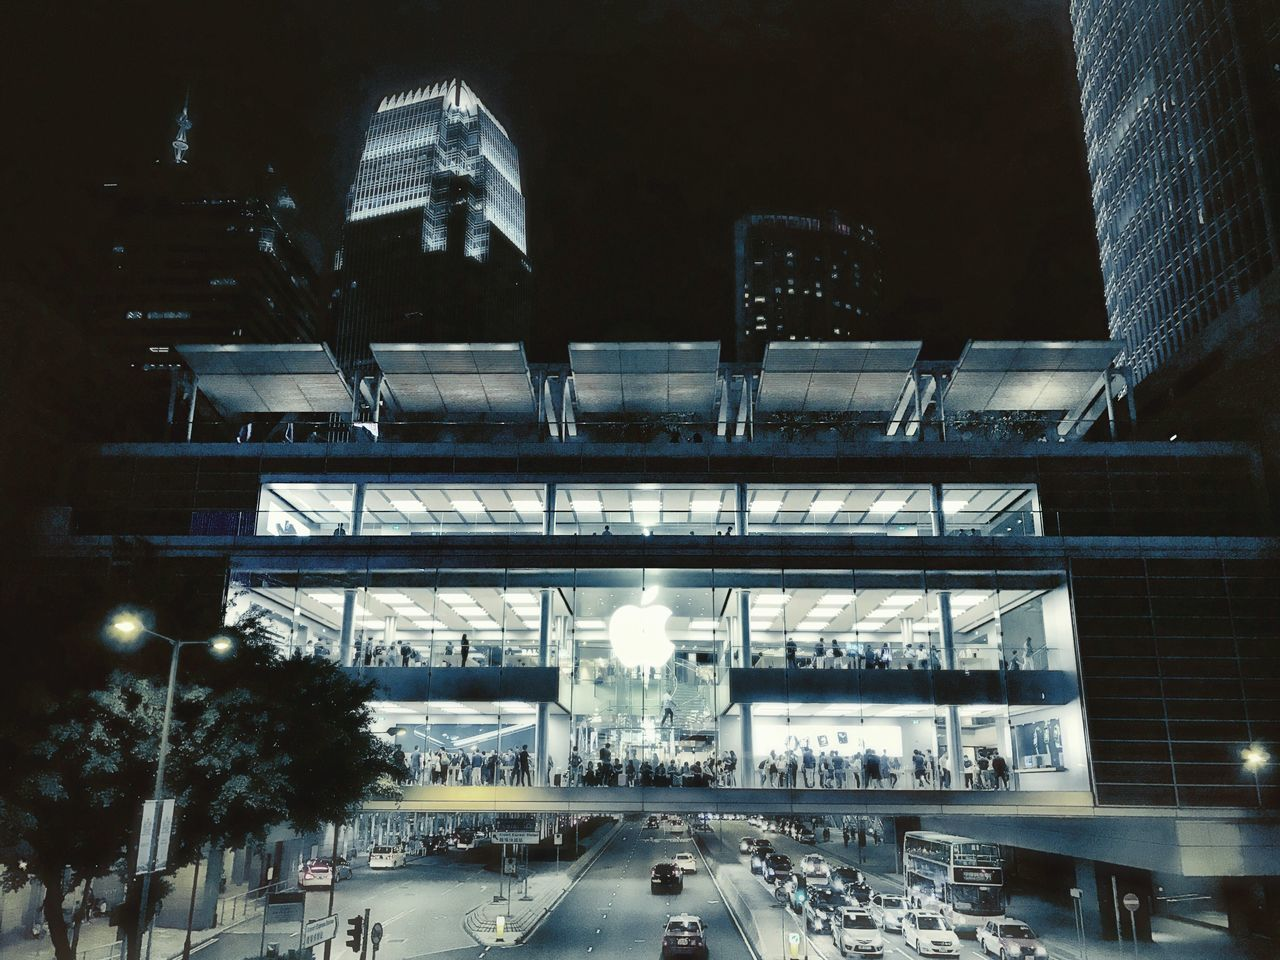 Architecture Built Structure Illuminated Transportation Night Building Exterior Travel Destinations City No People Outdoors Sky Apple Store HongKong Hongkong Photos Hong Kong IPhone 7 IPhoneography Urban Skyline Urbanphotography Nightphotography Low Light Cityscape Cyanotype Crowded City Life